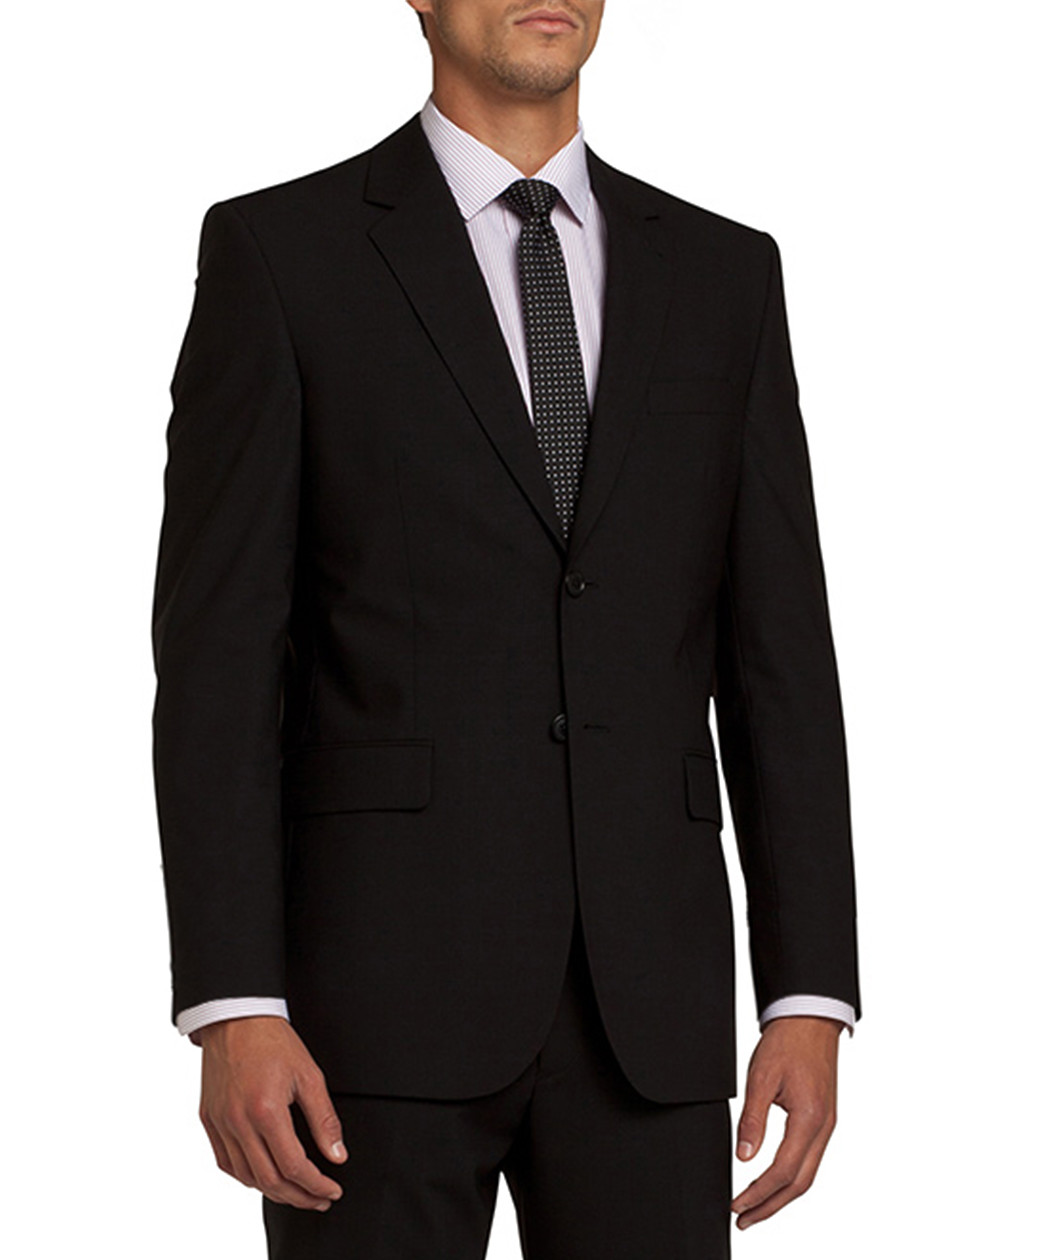 24ab2578b5b Van Heusen Classic Relaxed Fit Suit Jacket Performa